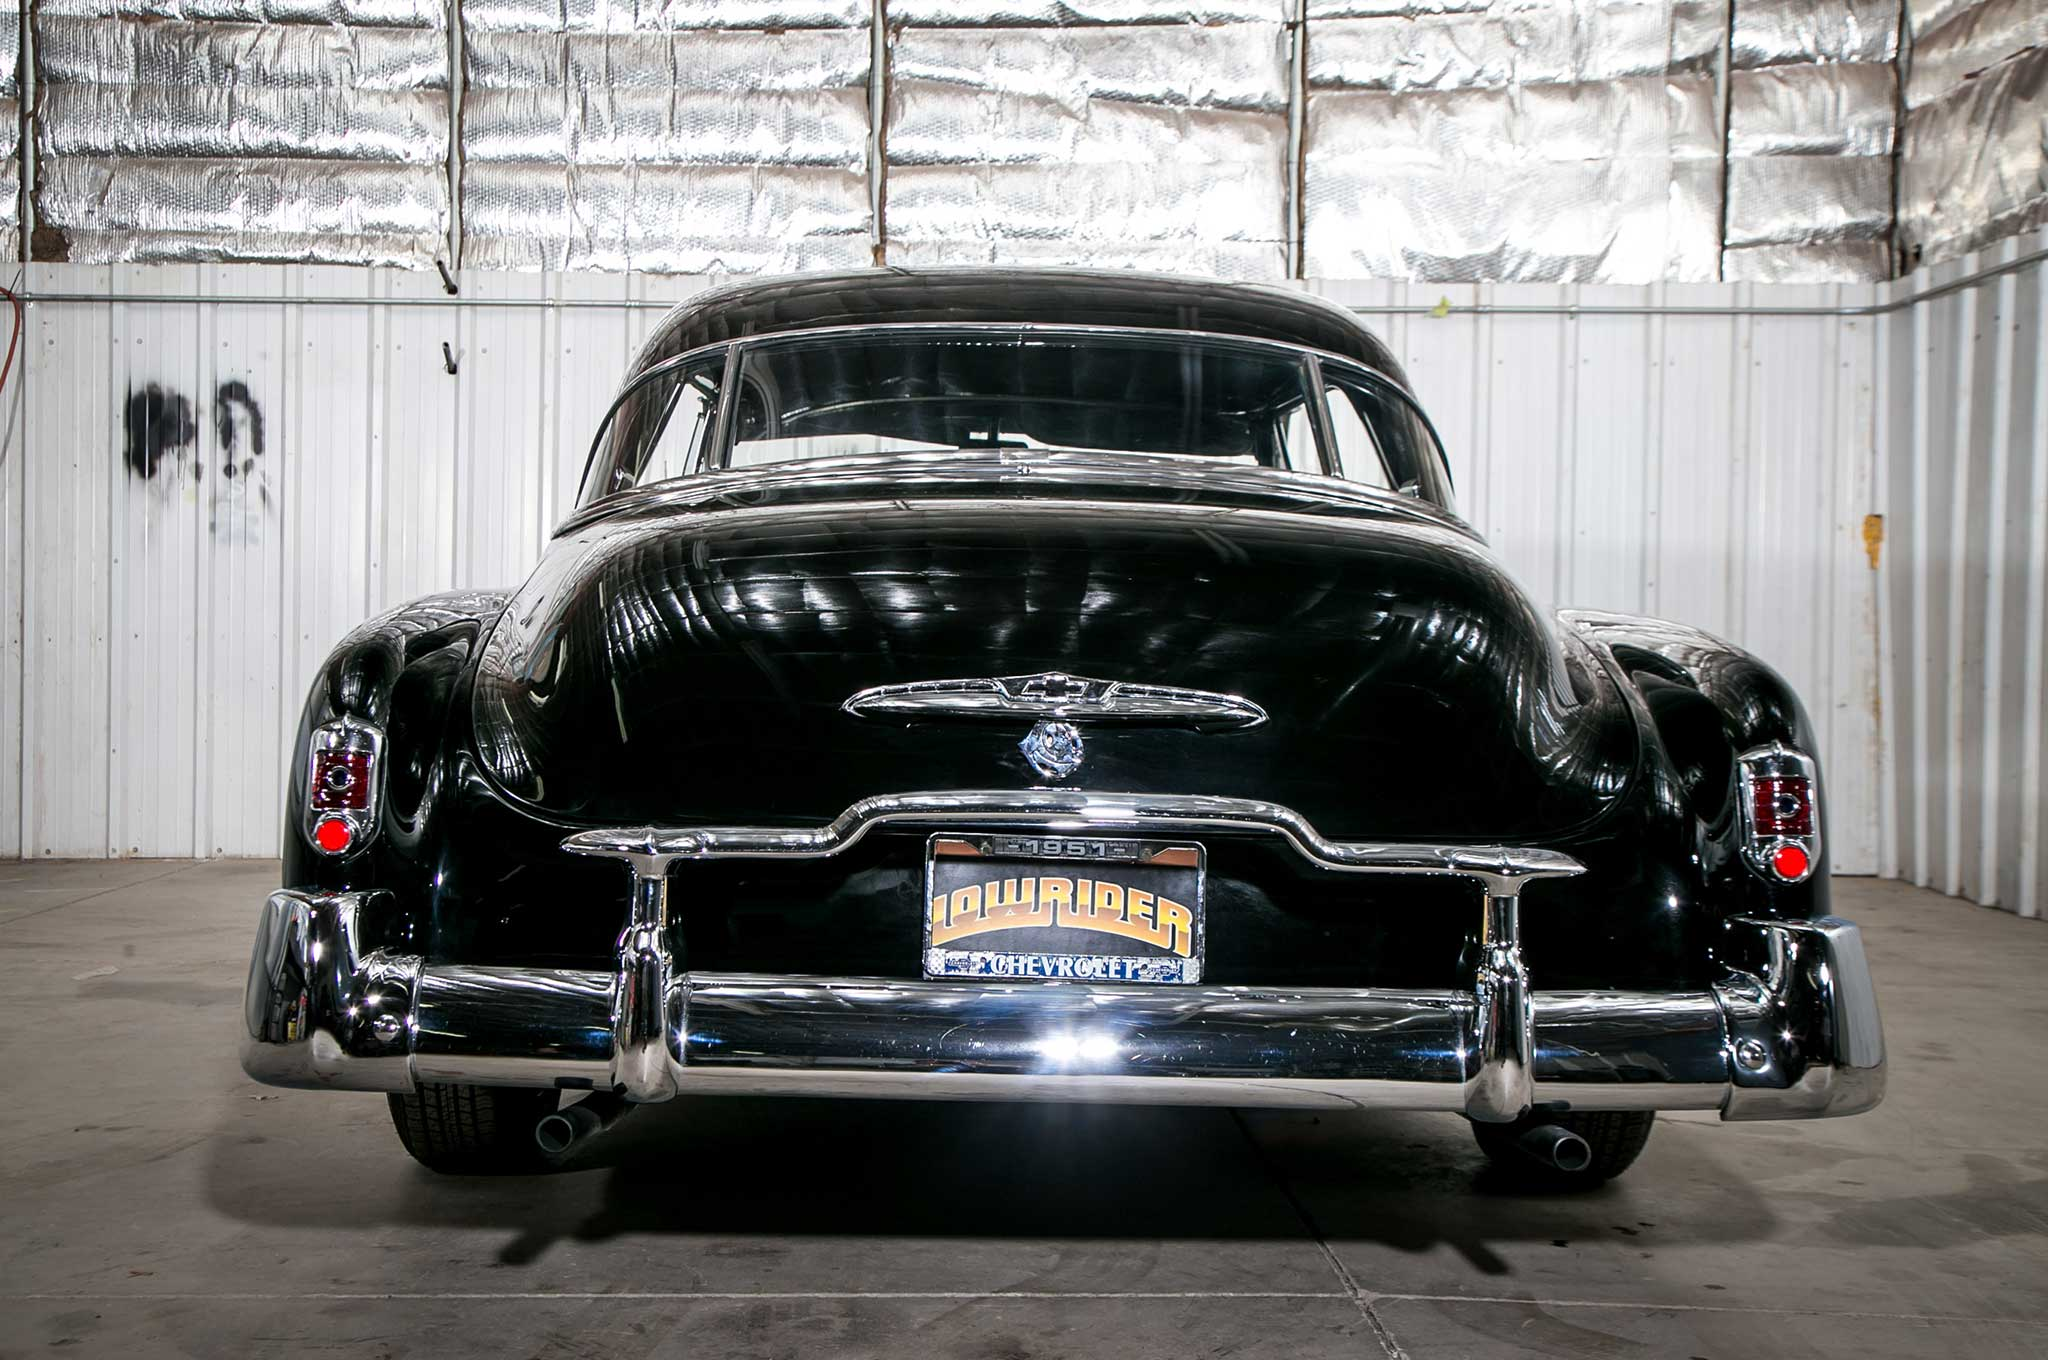 1951 Chevy DeLuxe with a Lowrider Flare